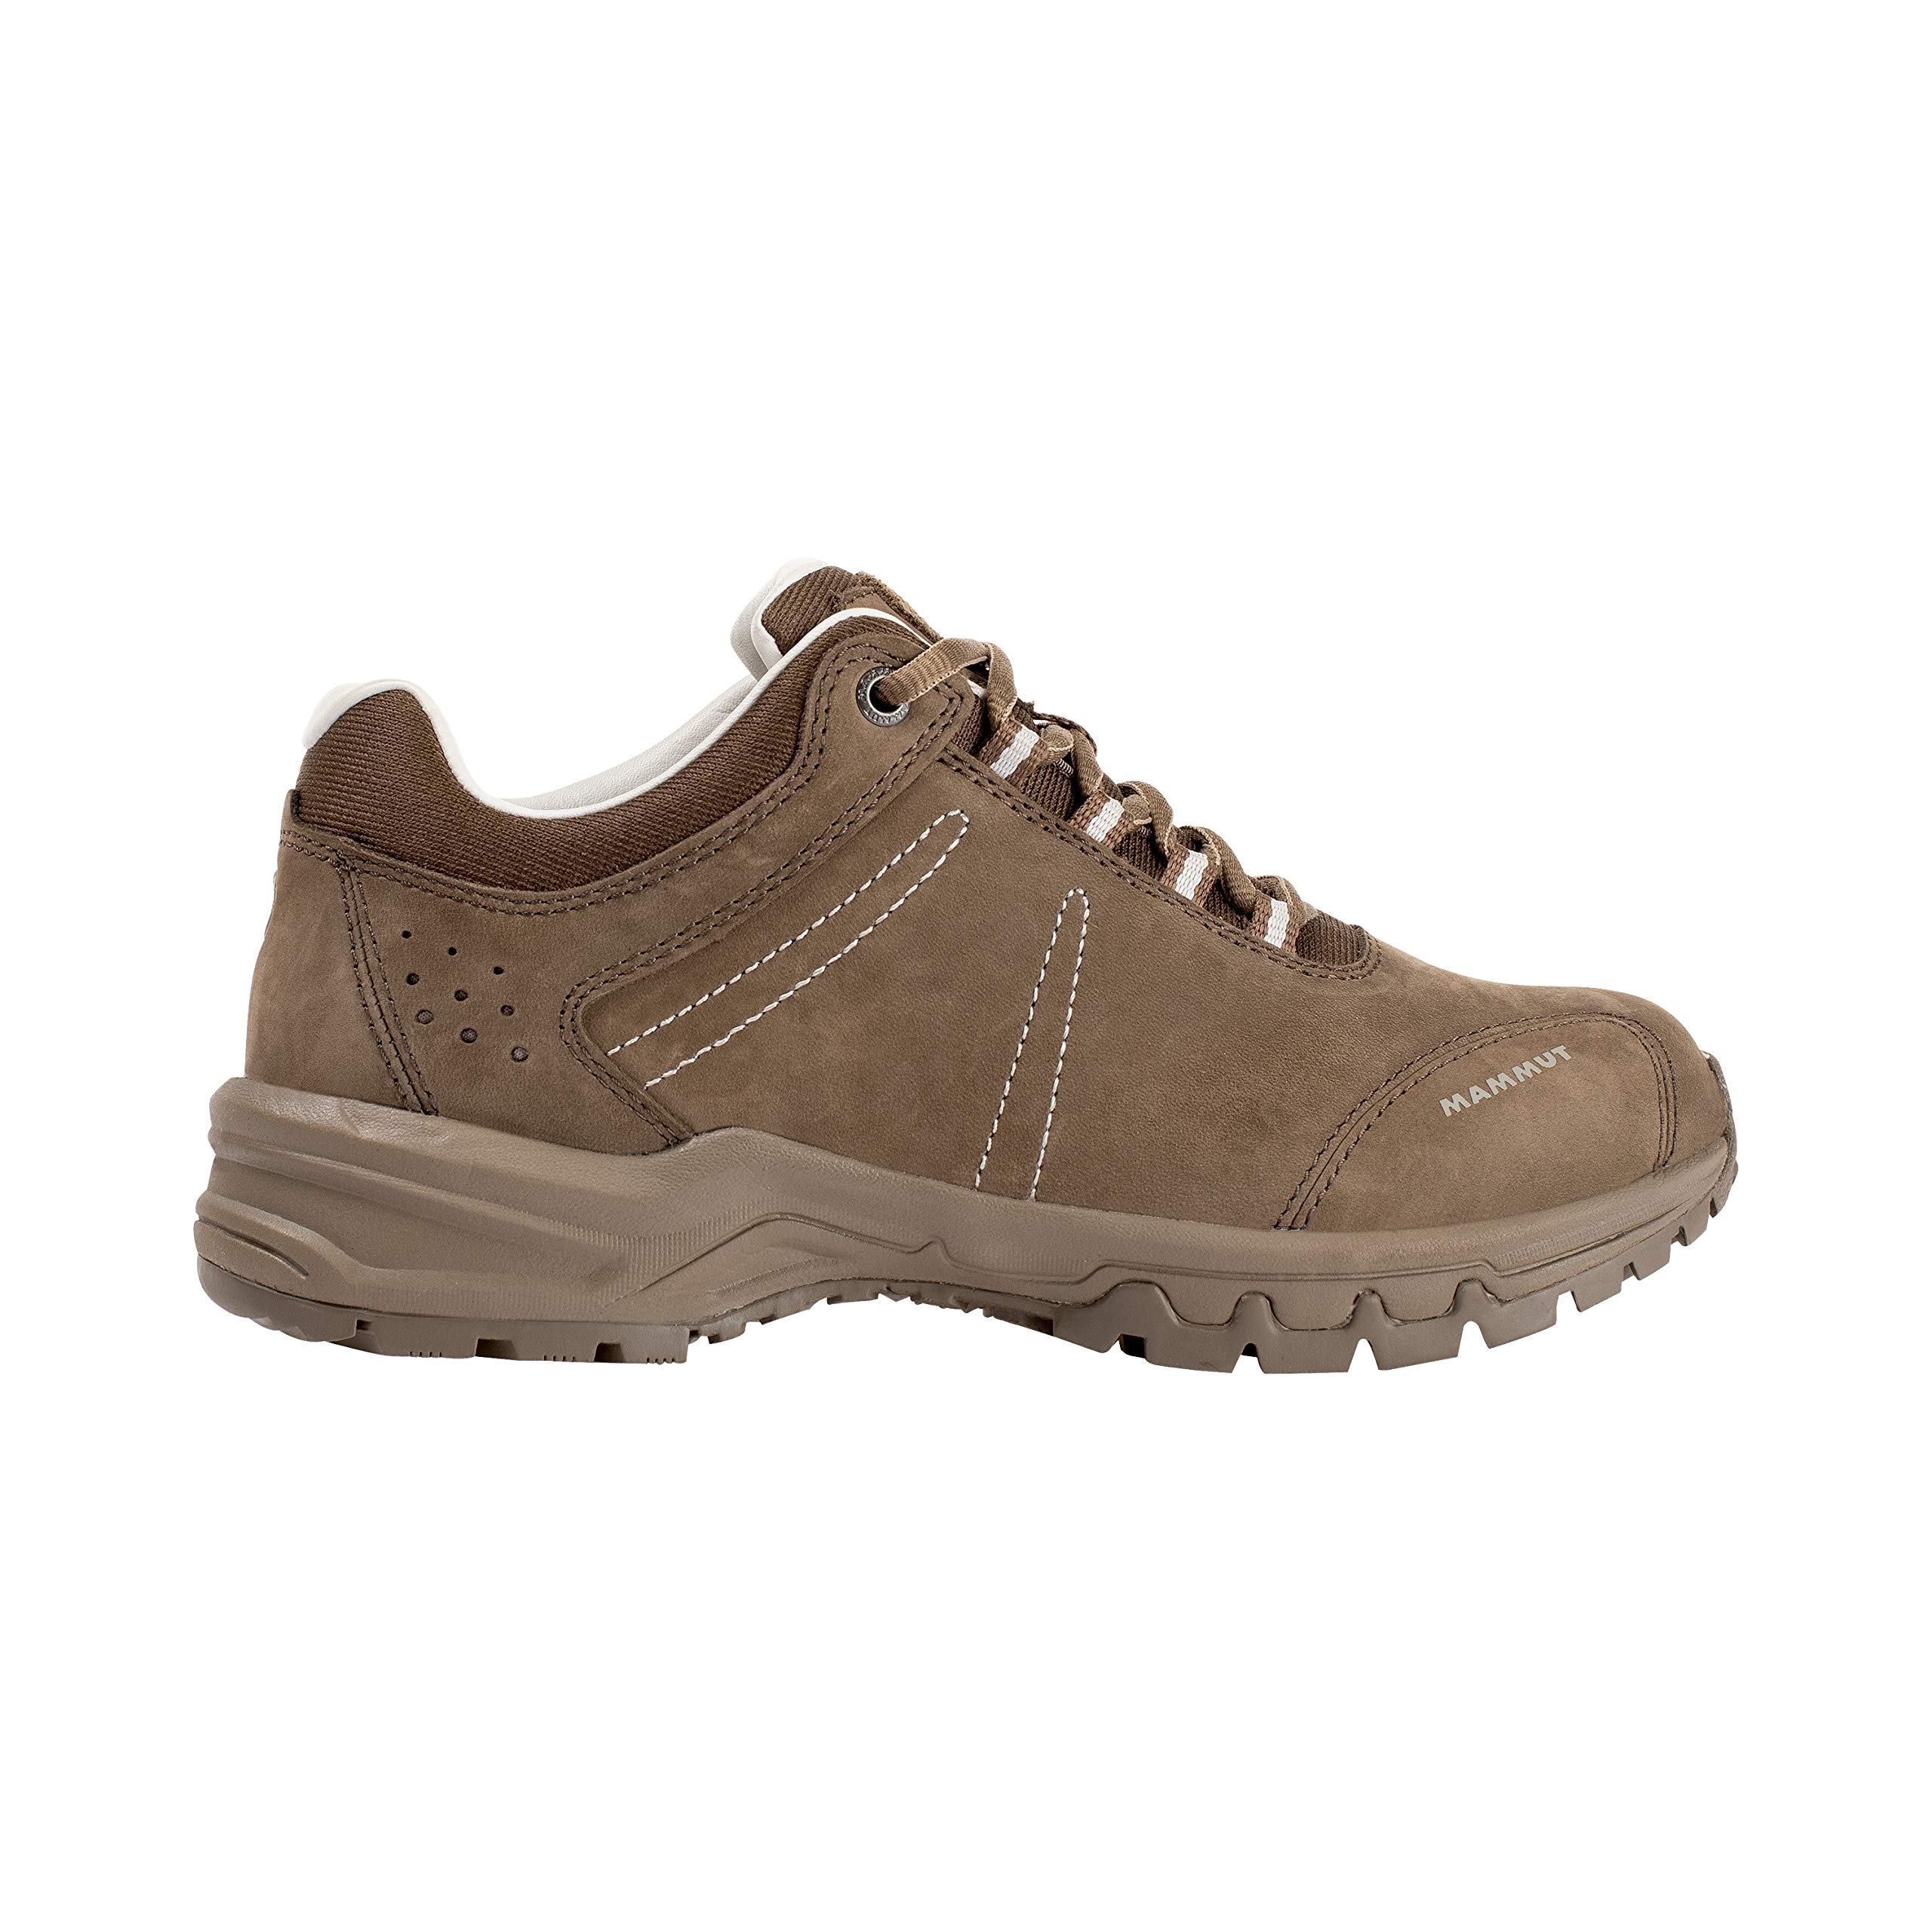 Mammut Nova III Low LTH Women; Size: 8 M US Women - bark-bark by Mammut